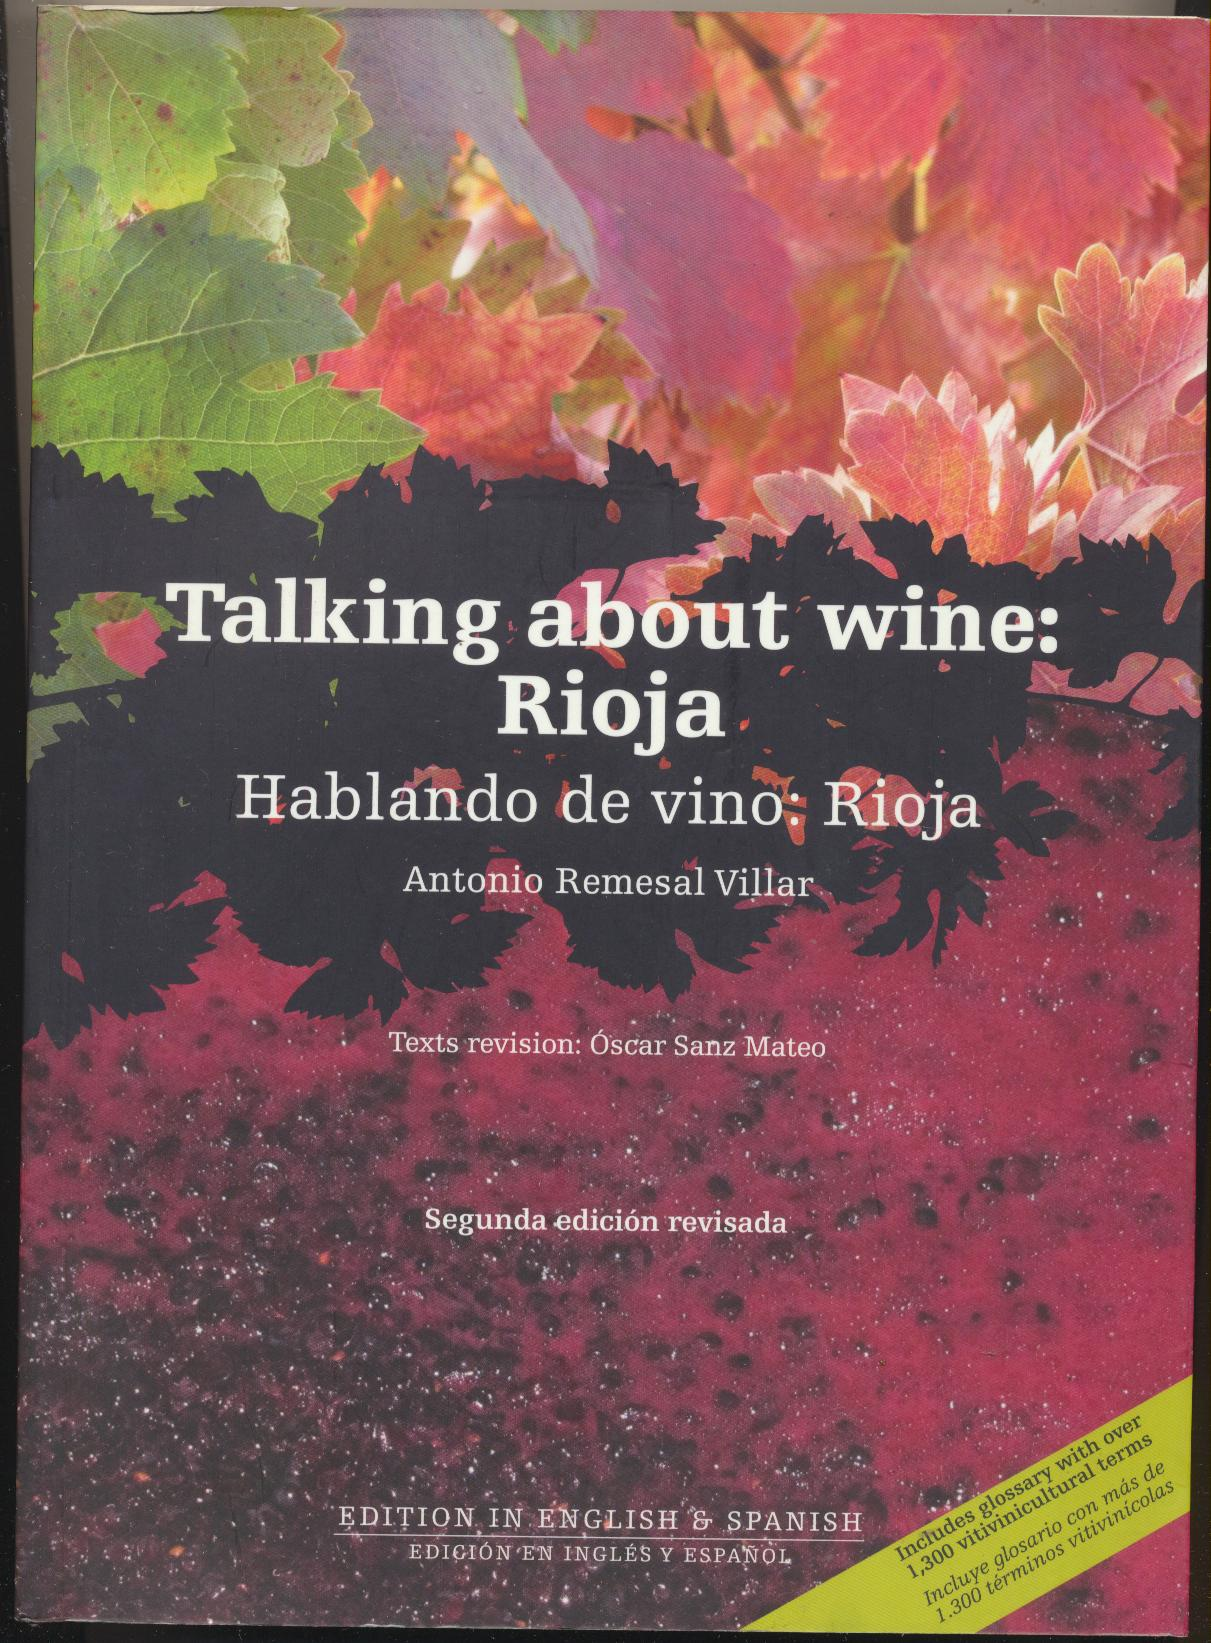 Antonio Remesal Villar. Talking about wine: Rioja. Hablando de vino: Rioja. Edition in English & Spanish. Edición en inglés y Español